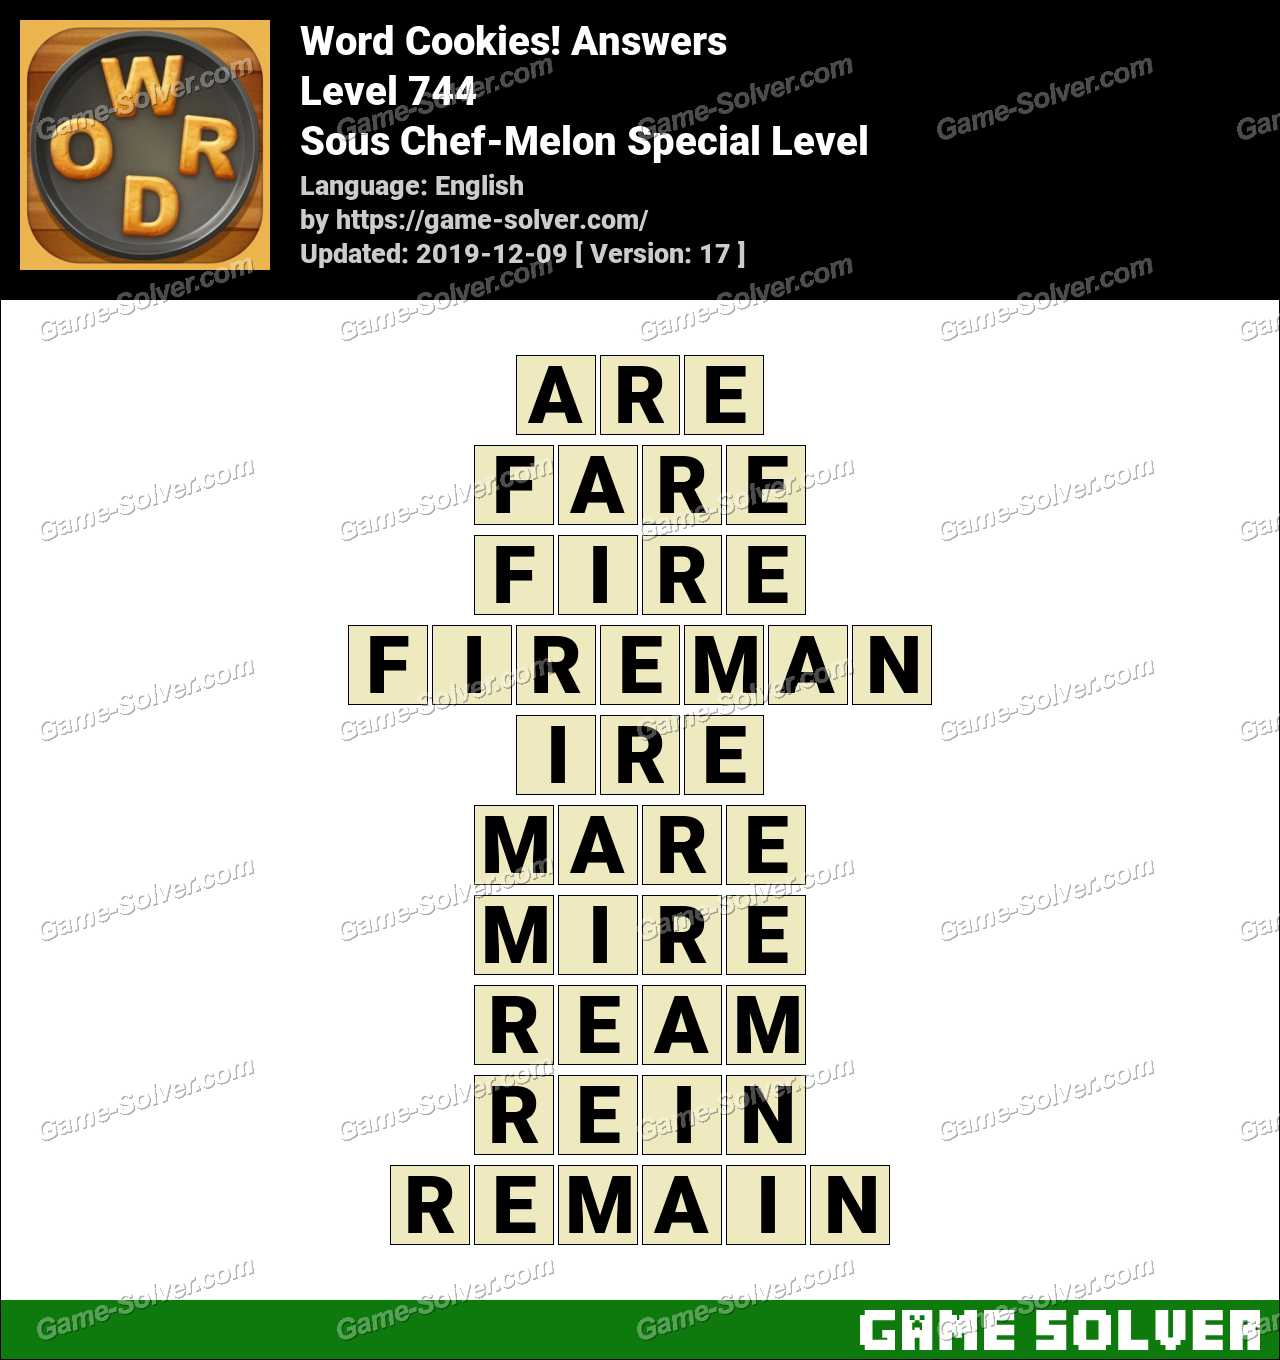 Word Cookies Sous Chef-Melon Special Level Answers